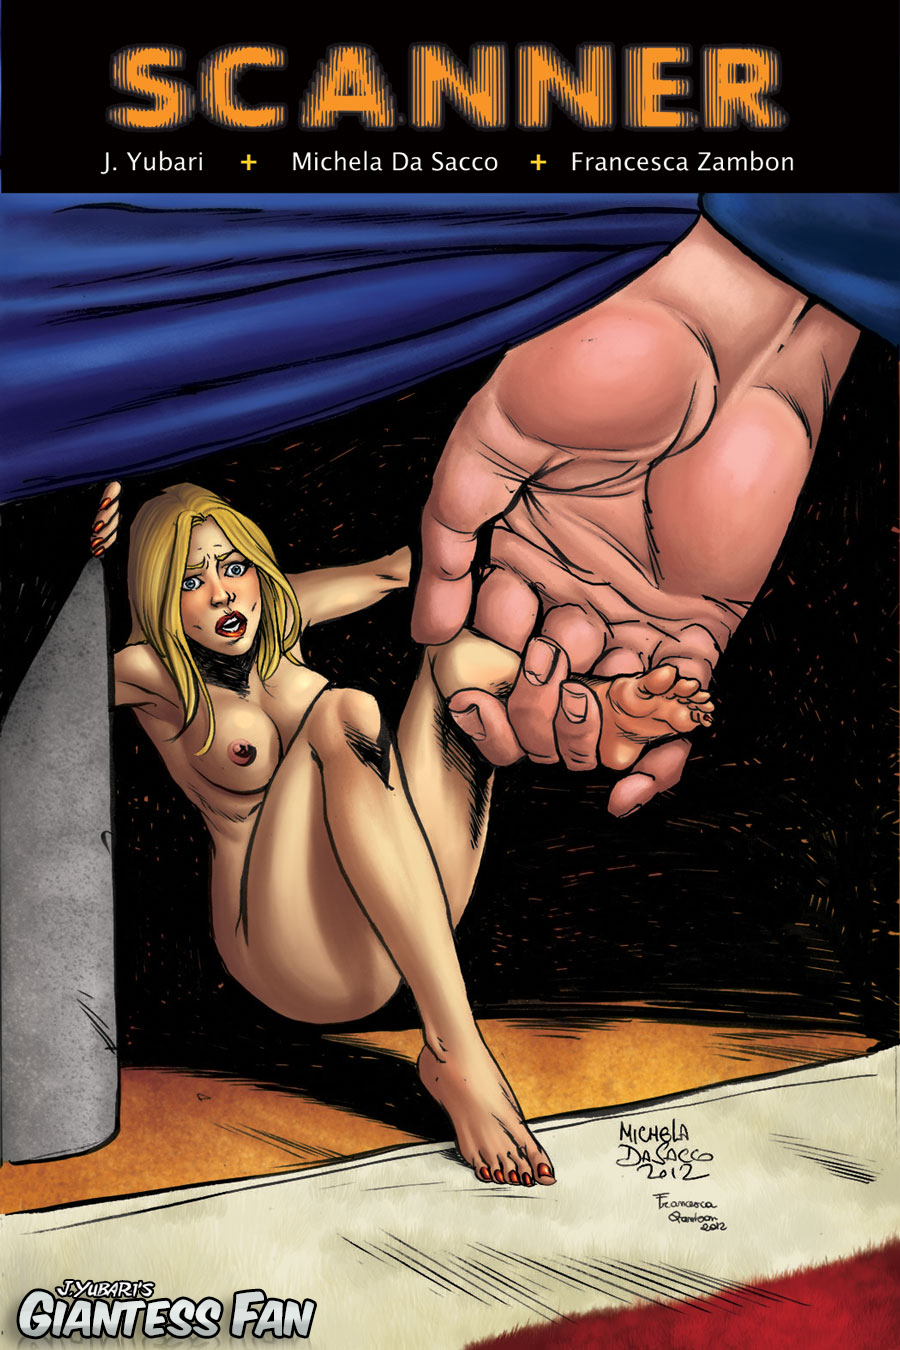 scanner_3___shrunken_woman__gts__growth__shrinking_by_giantess_fan_comics-d5zis5y